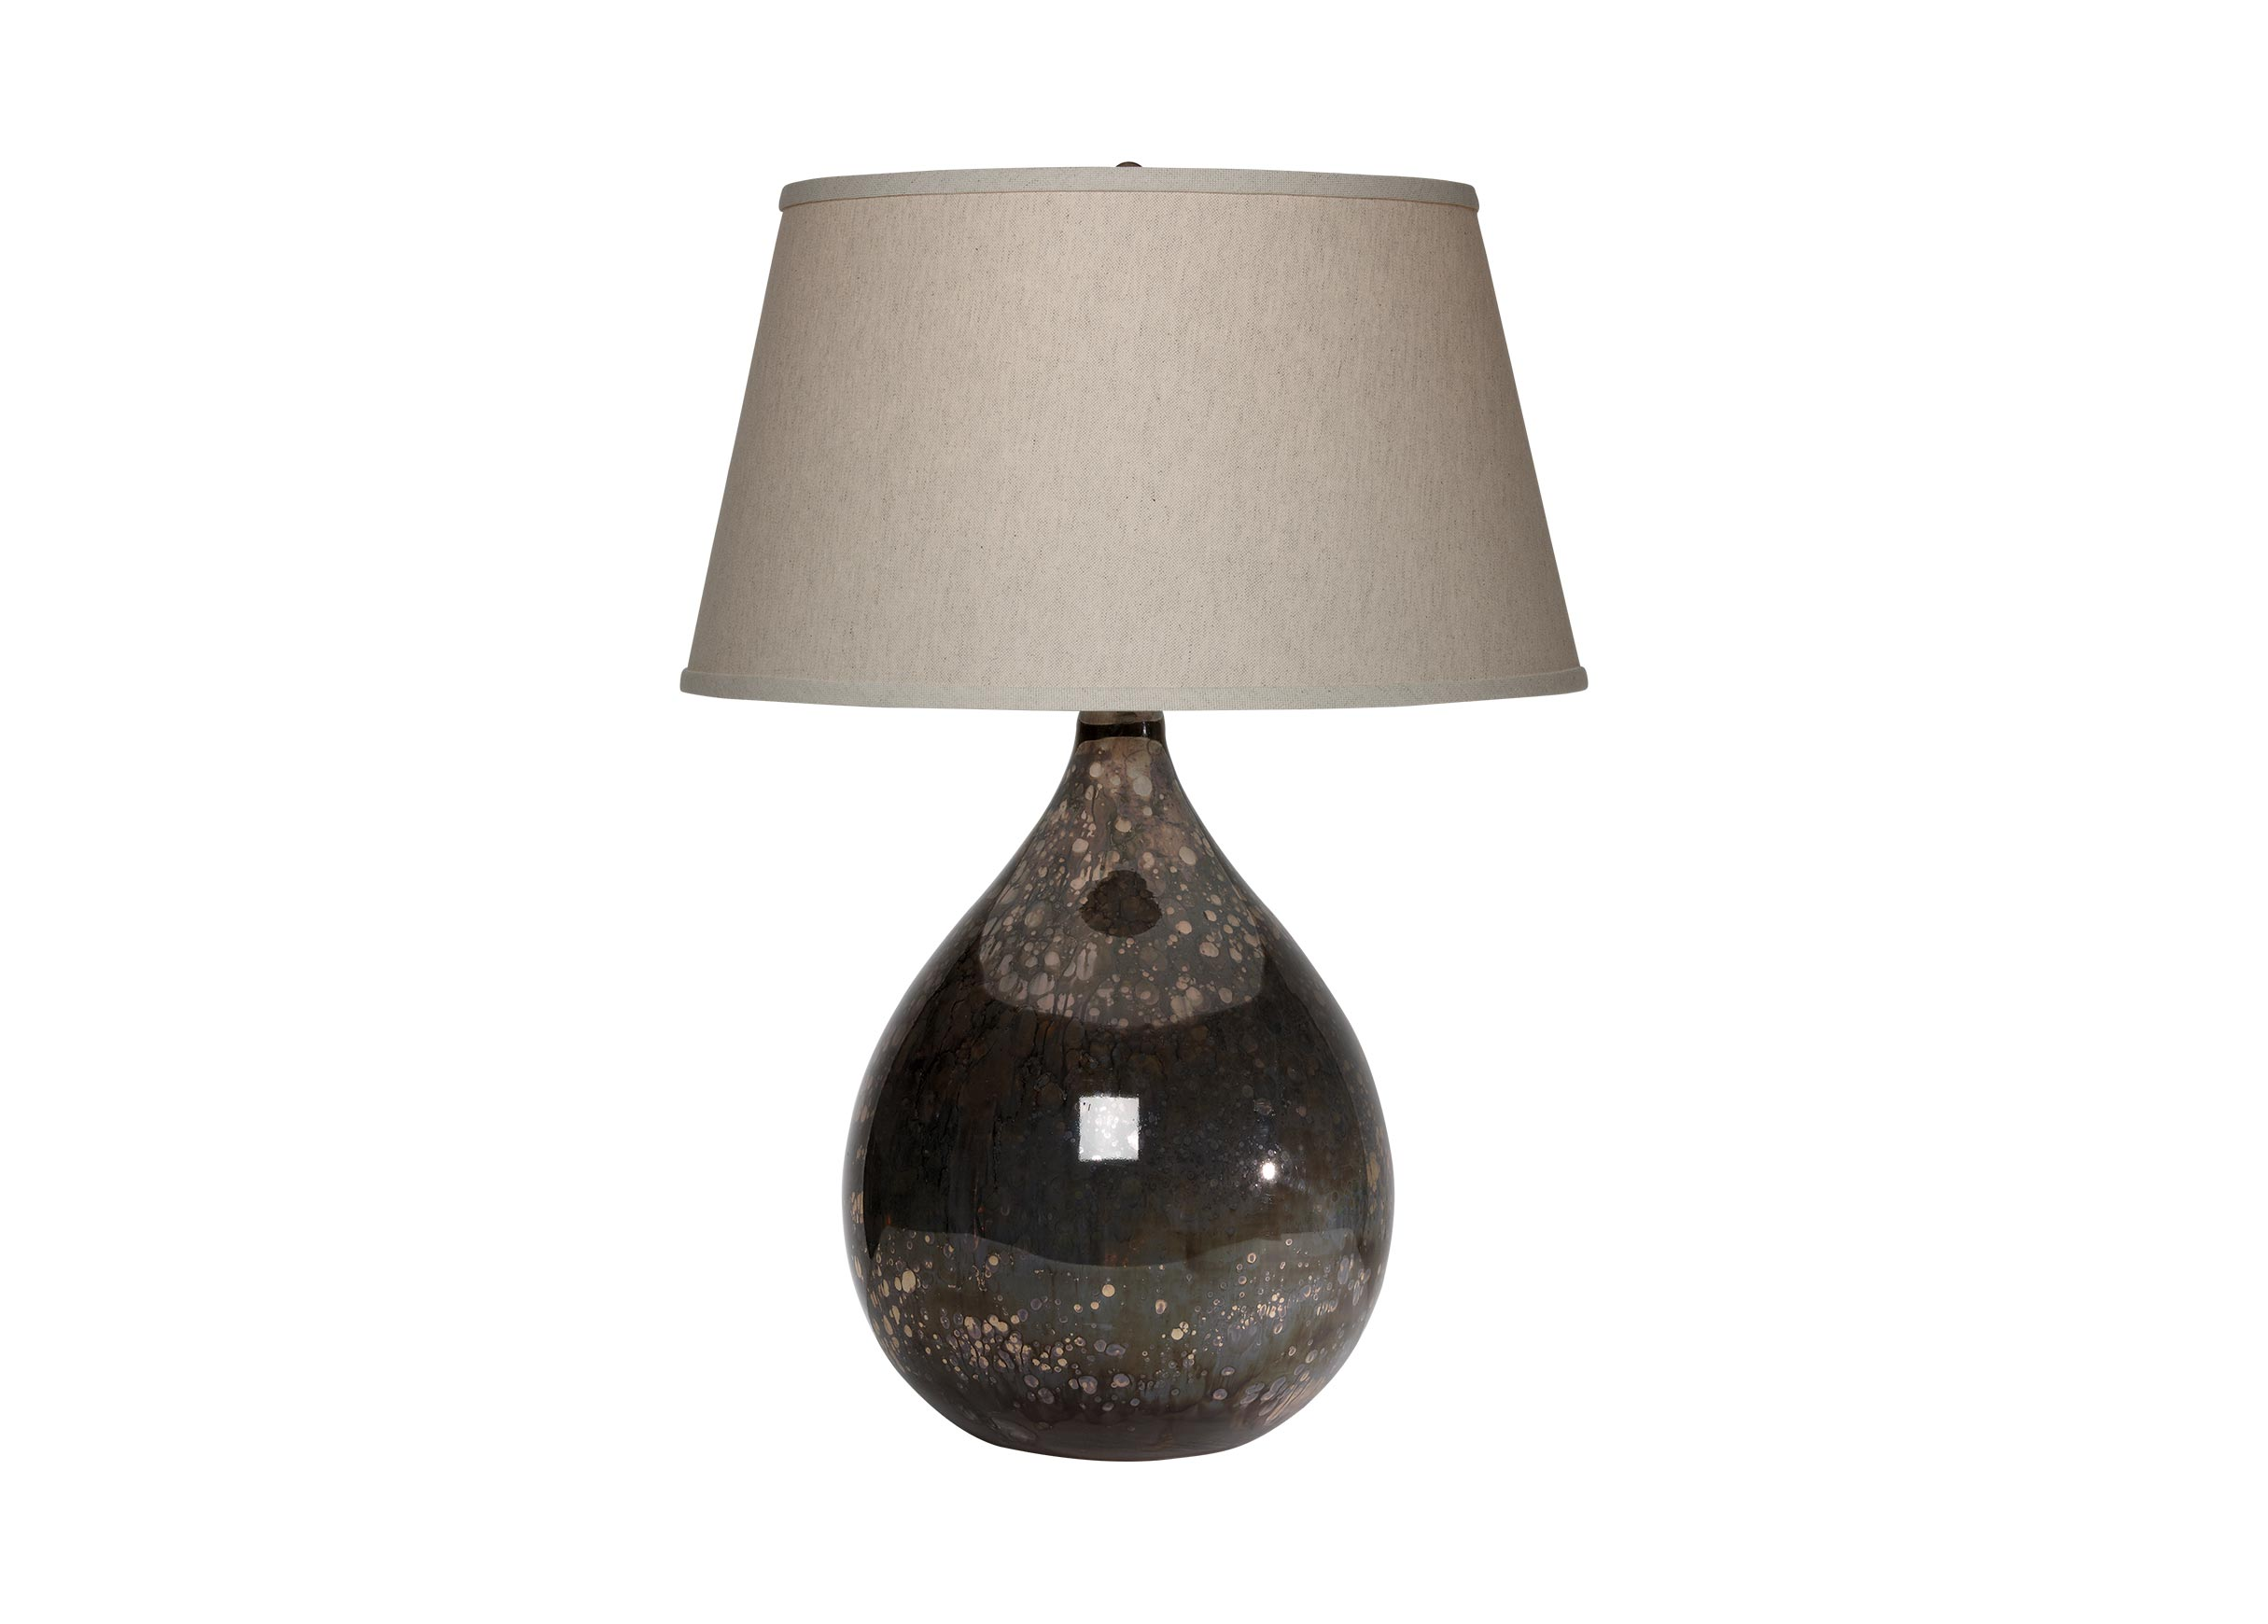 Karmady table lamp table lamps sitegenesis 10112 controllers images karmady table lamp largegray geotapseo Choice Image